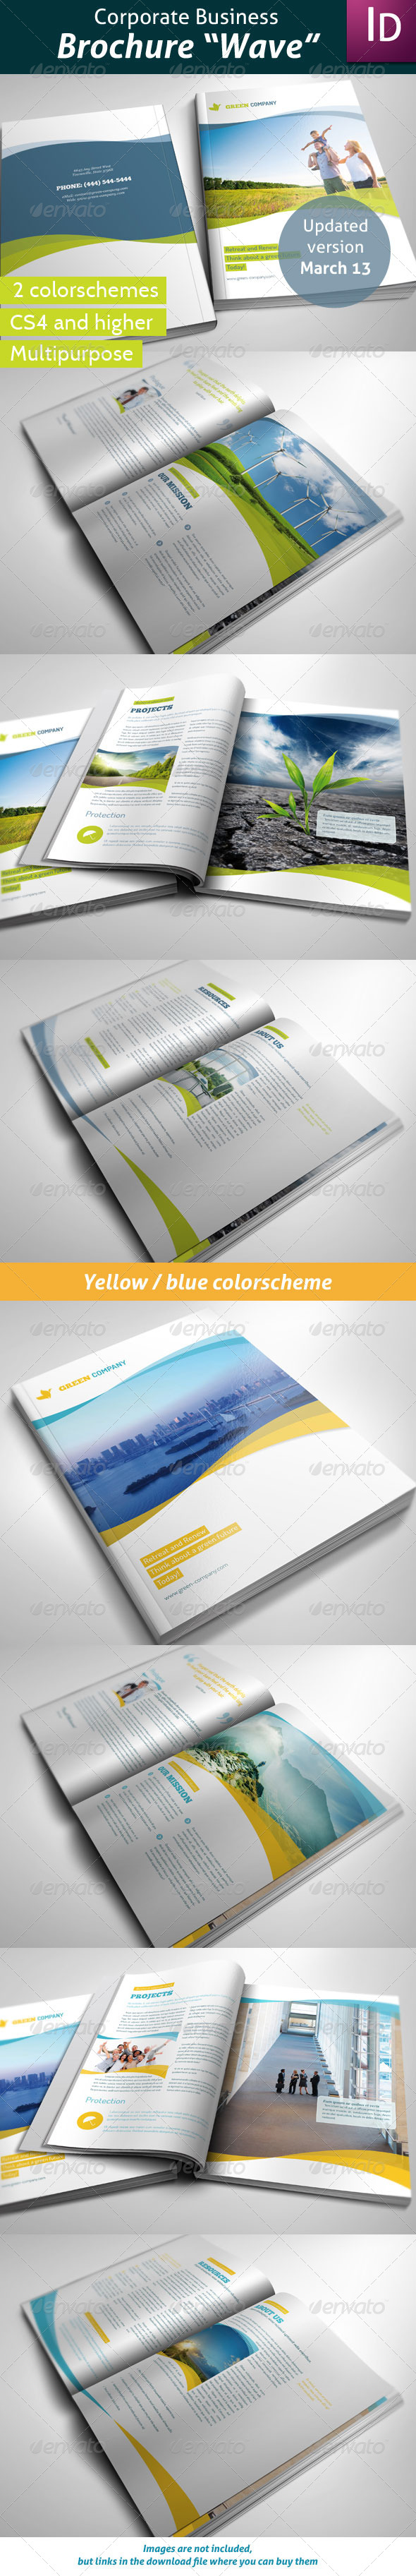 Business Brochure Wave - Corporate Brochures